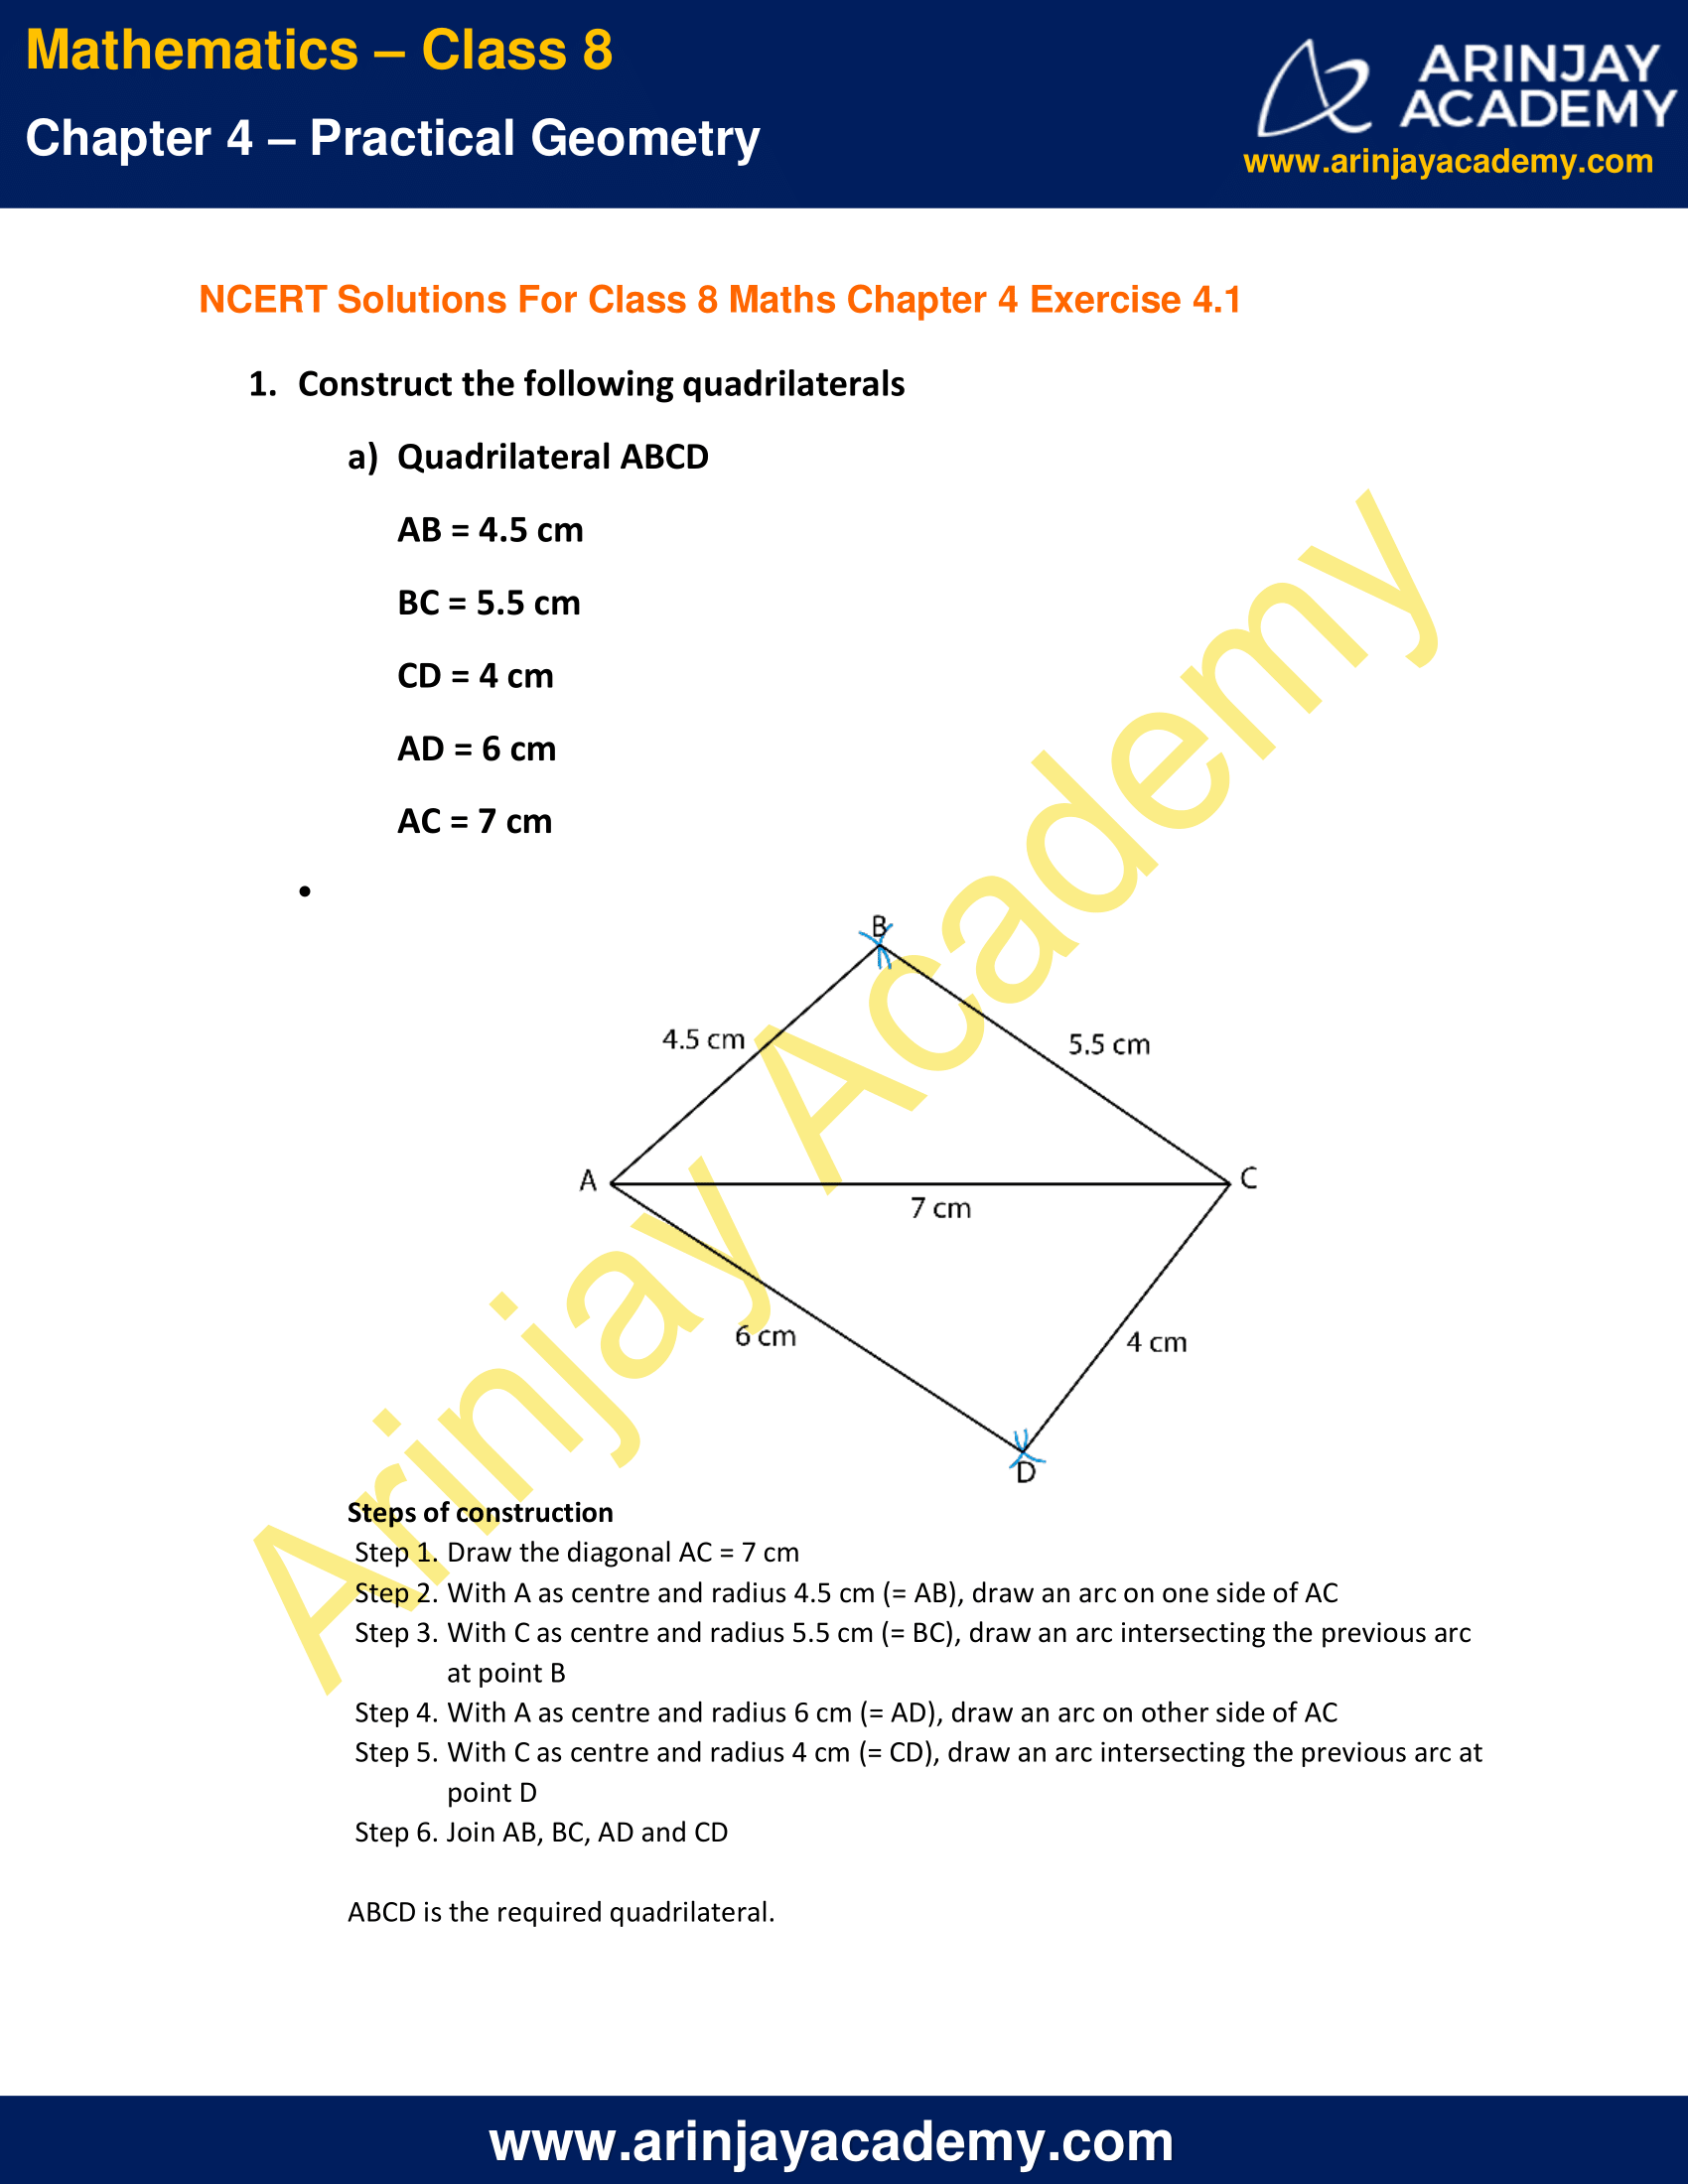 NCERT Solutions for Class 8 Maths Chapter 4 Exercise 4.1 image 1